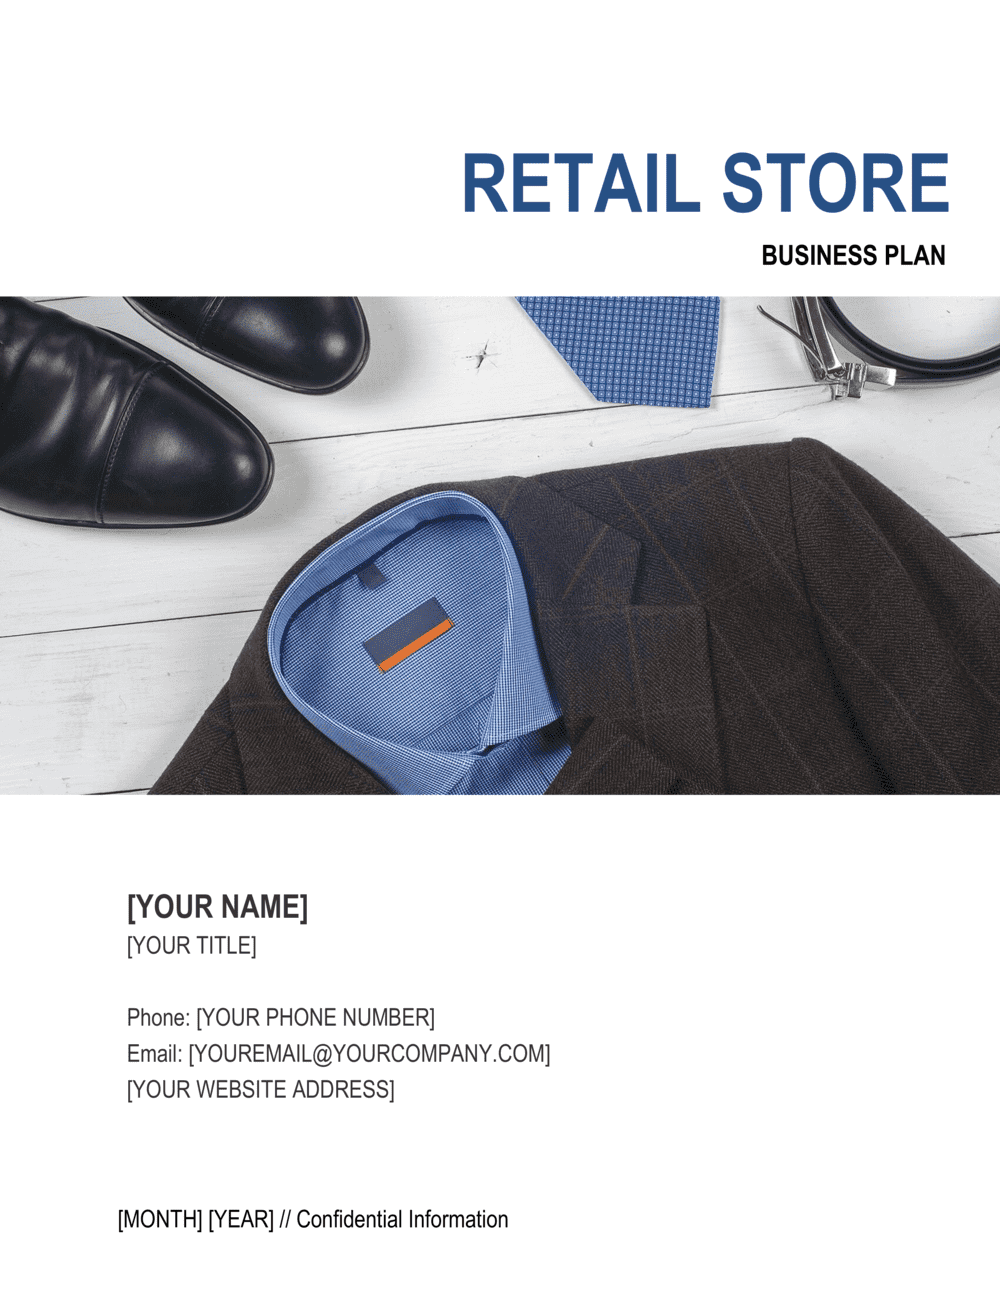 Business-in-a-Box's Retail Store Business Plan 4 Template